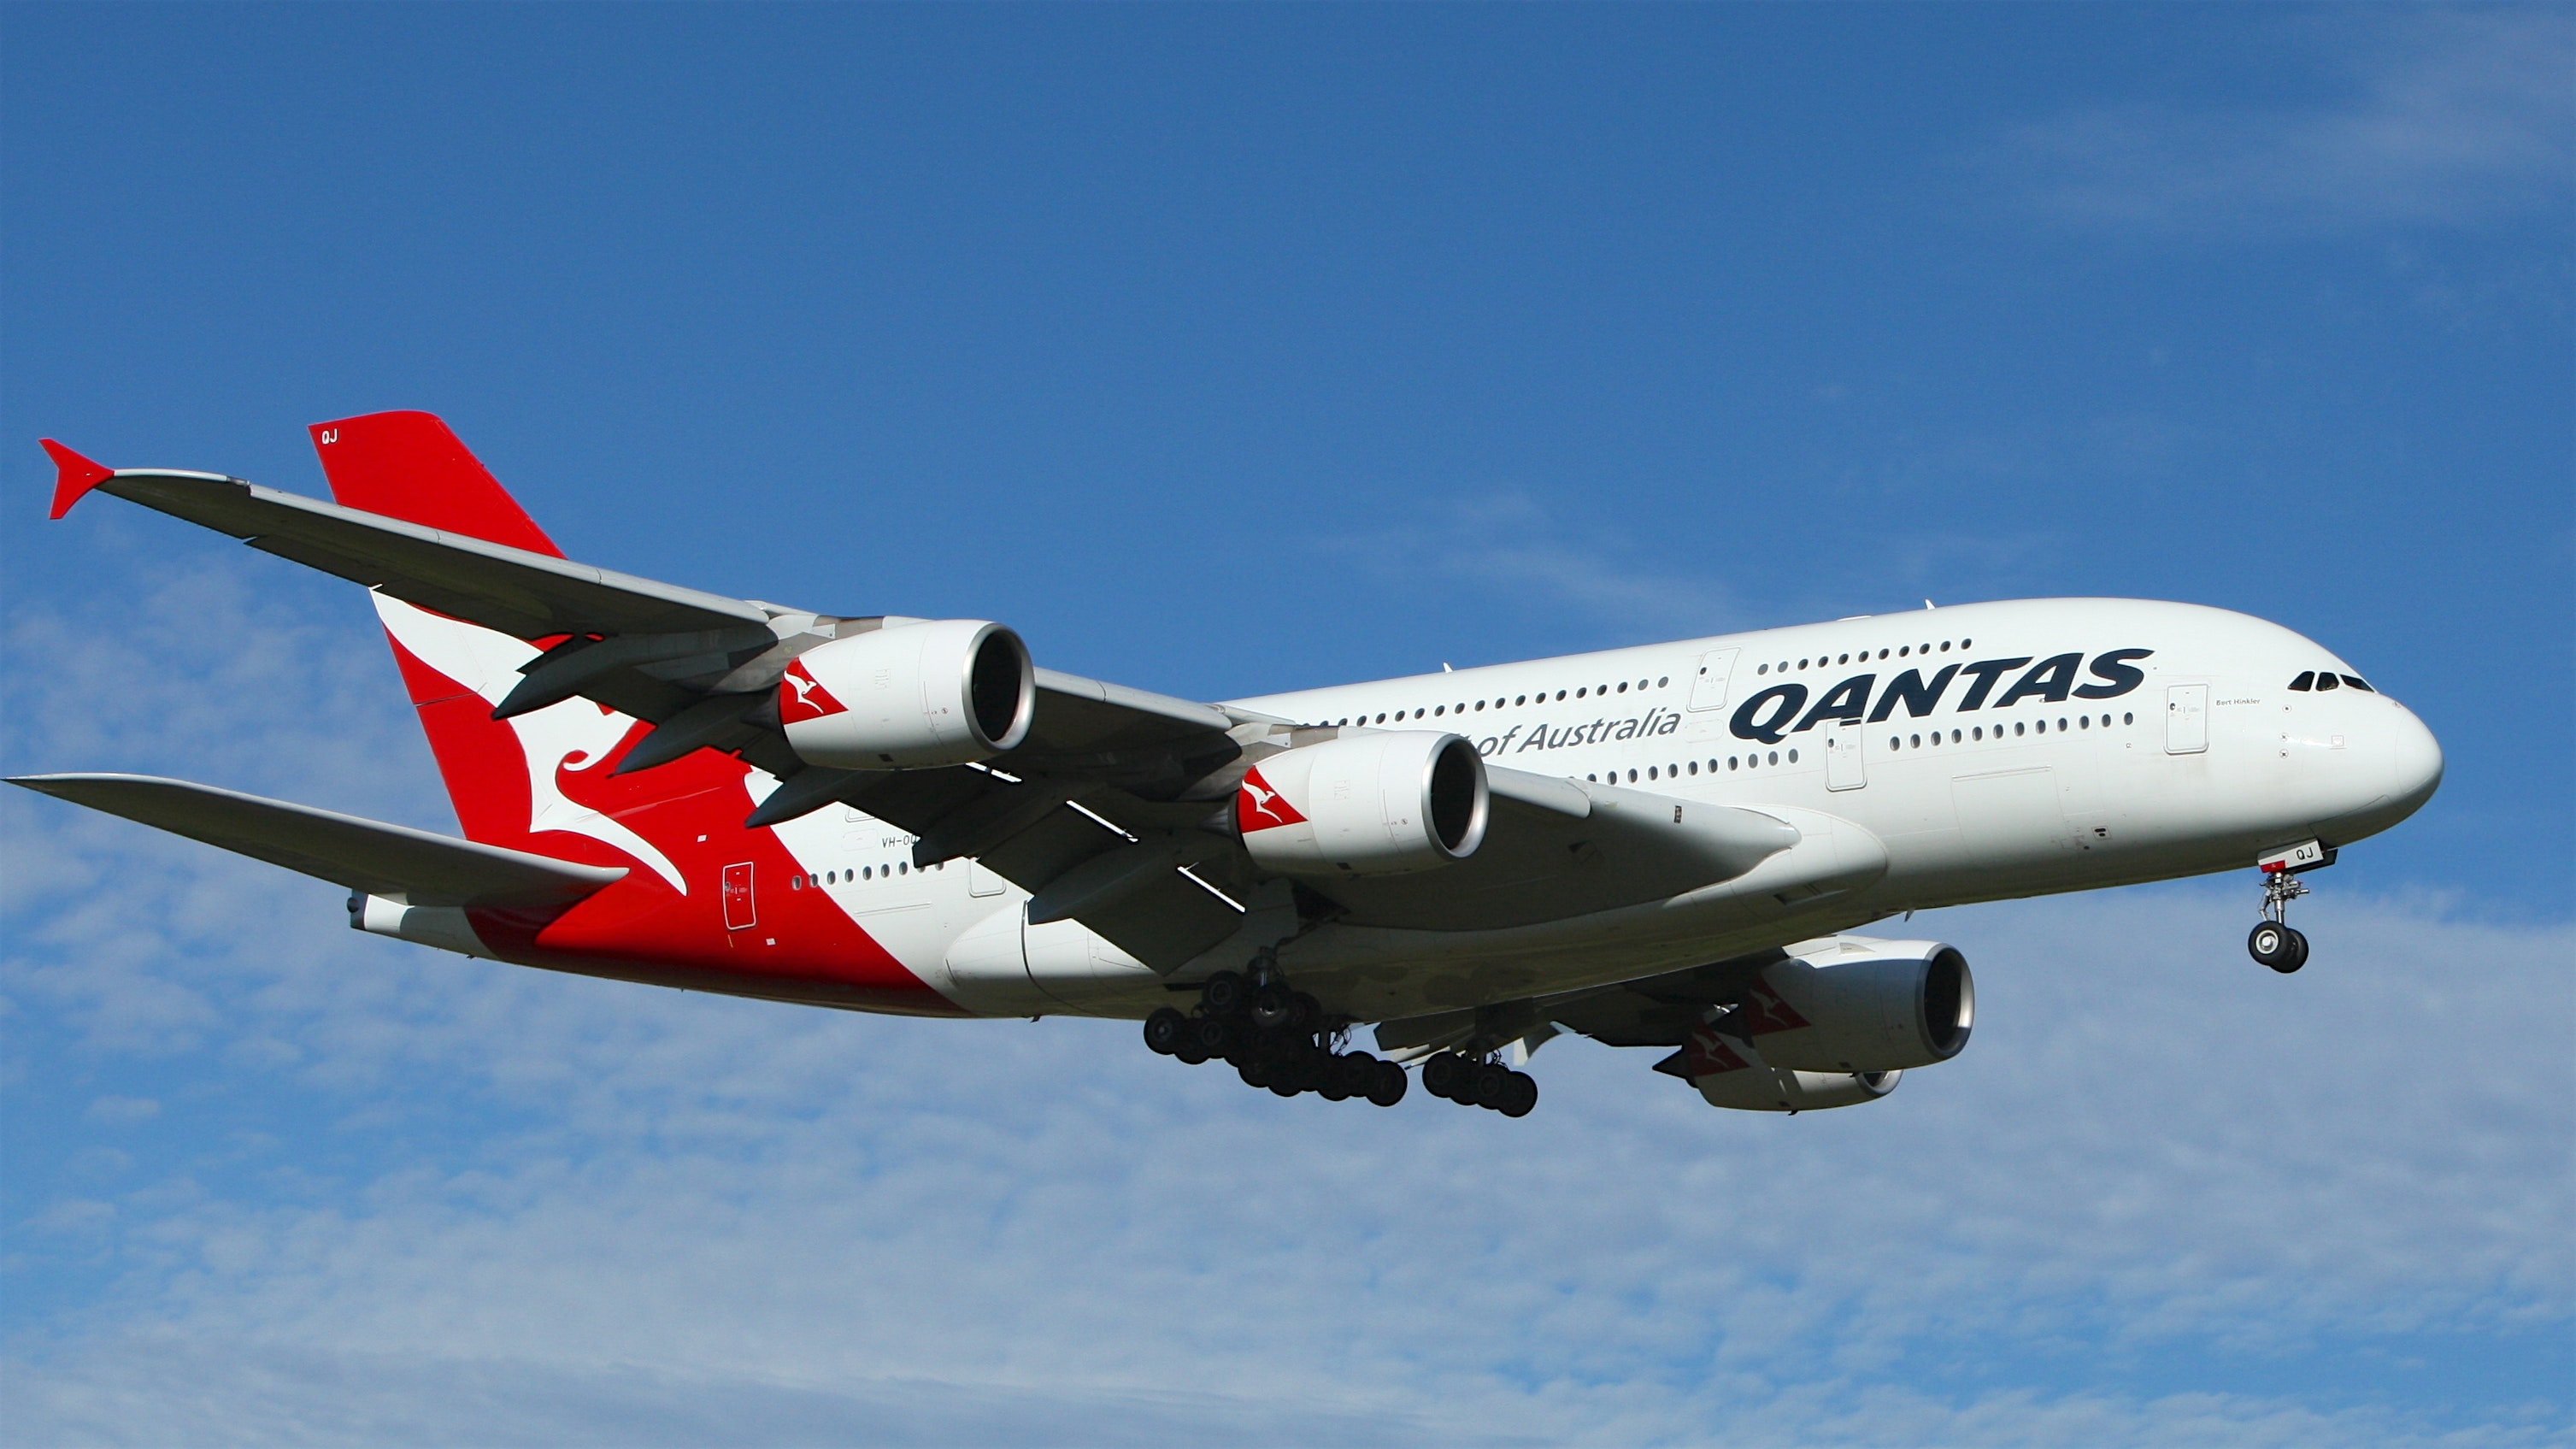 White and red qantas airplane fly high under blue and white clouds photo